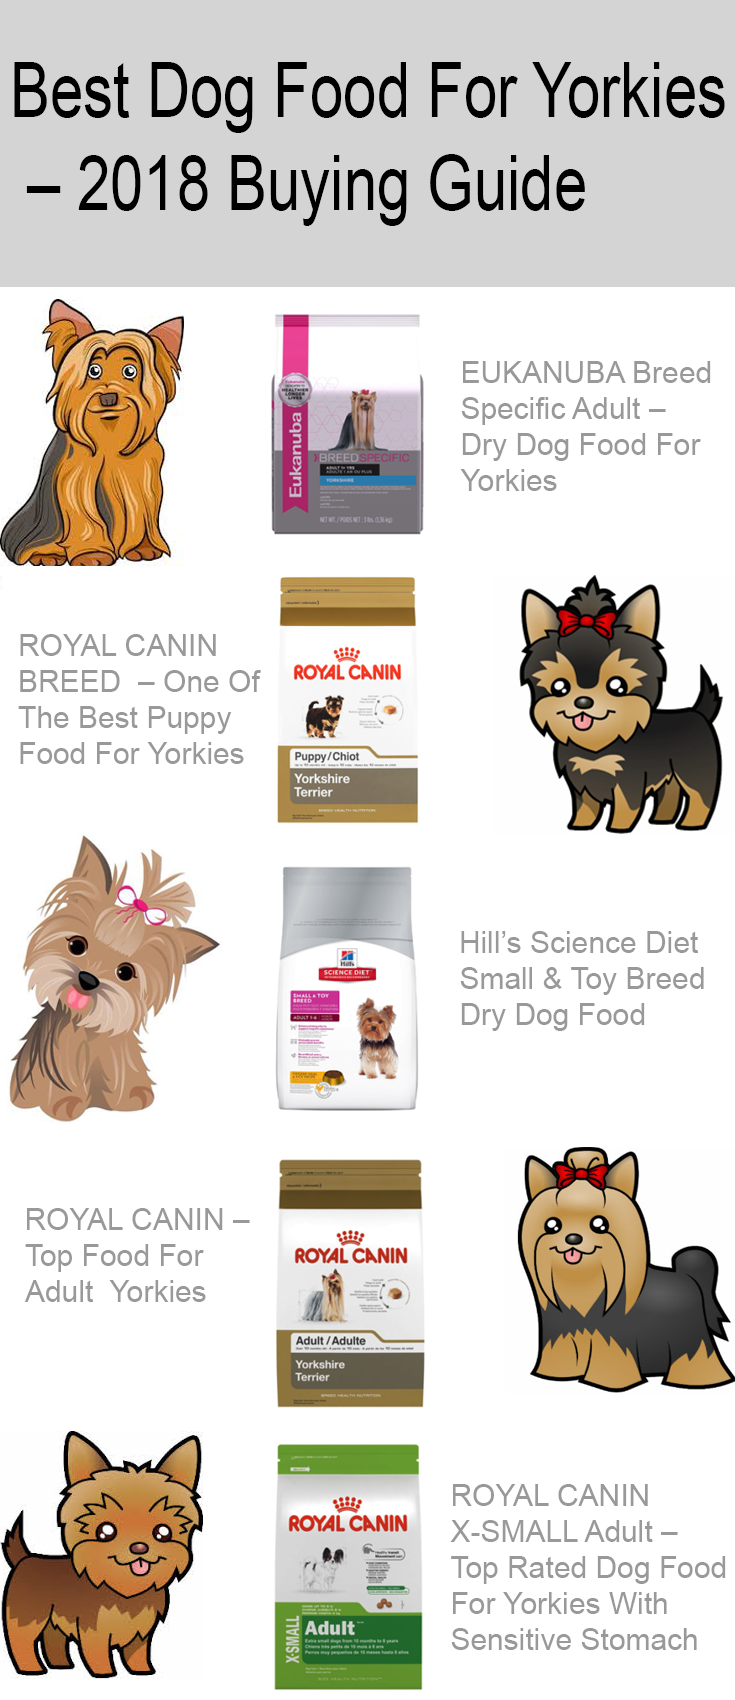 5 Best Dog Food For Yorkies Teacup Puppy 2019 Brands Training Your Dog Dog Training Dog Training Collar